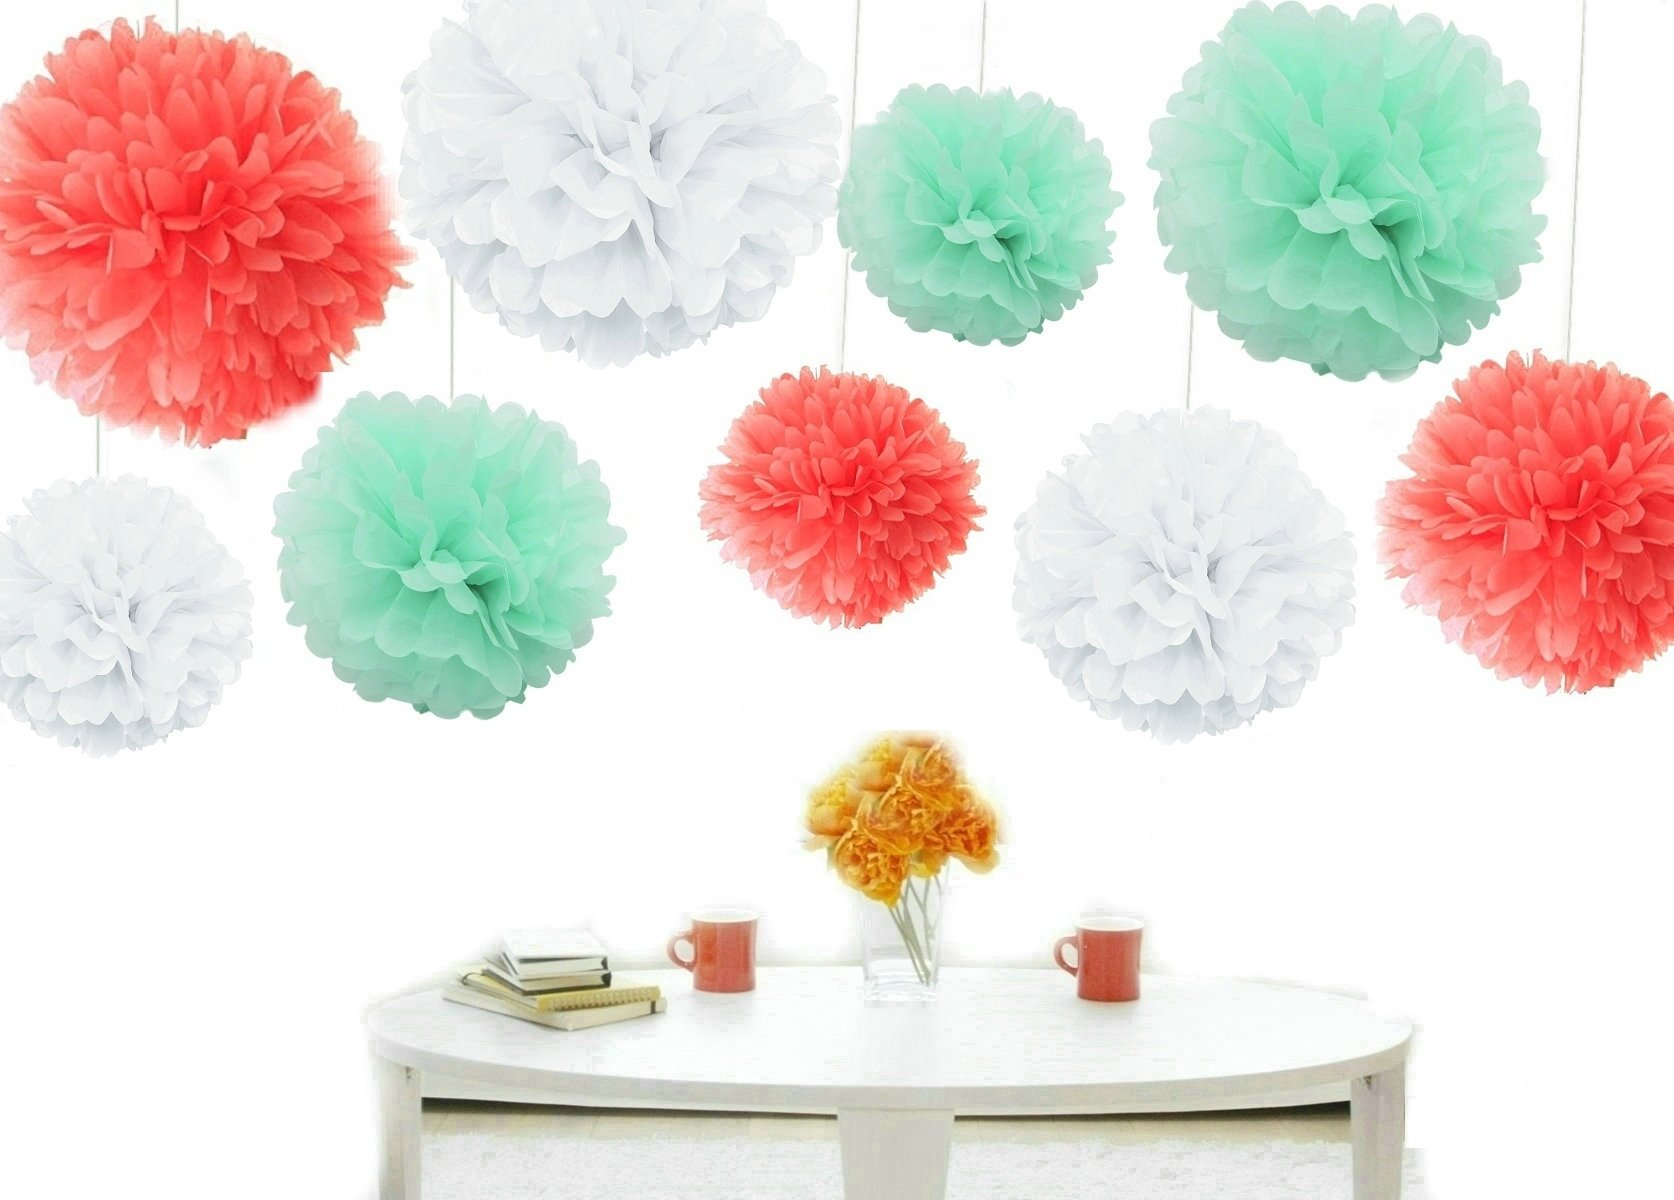 Kubert® Party Tissue Paper Pom-poms Flower Ball of 8, 10, 14-Inch, 18 Pieces, -Coral, Mint Green & White